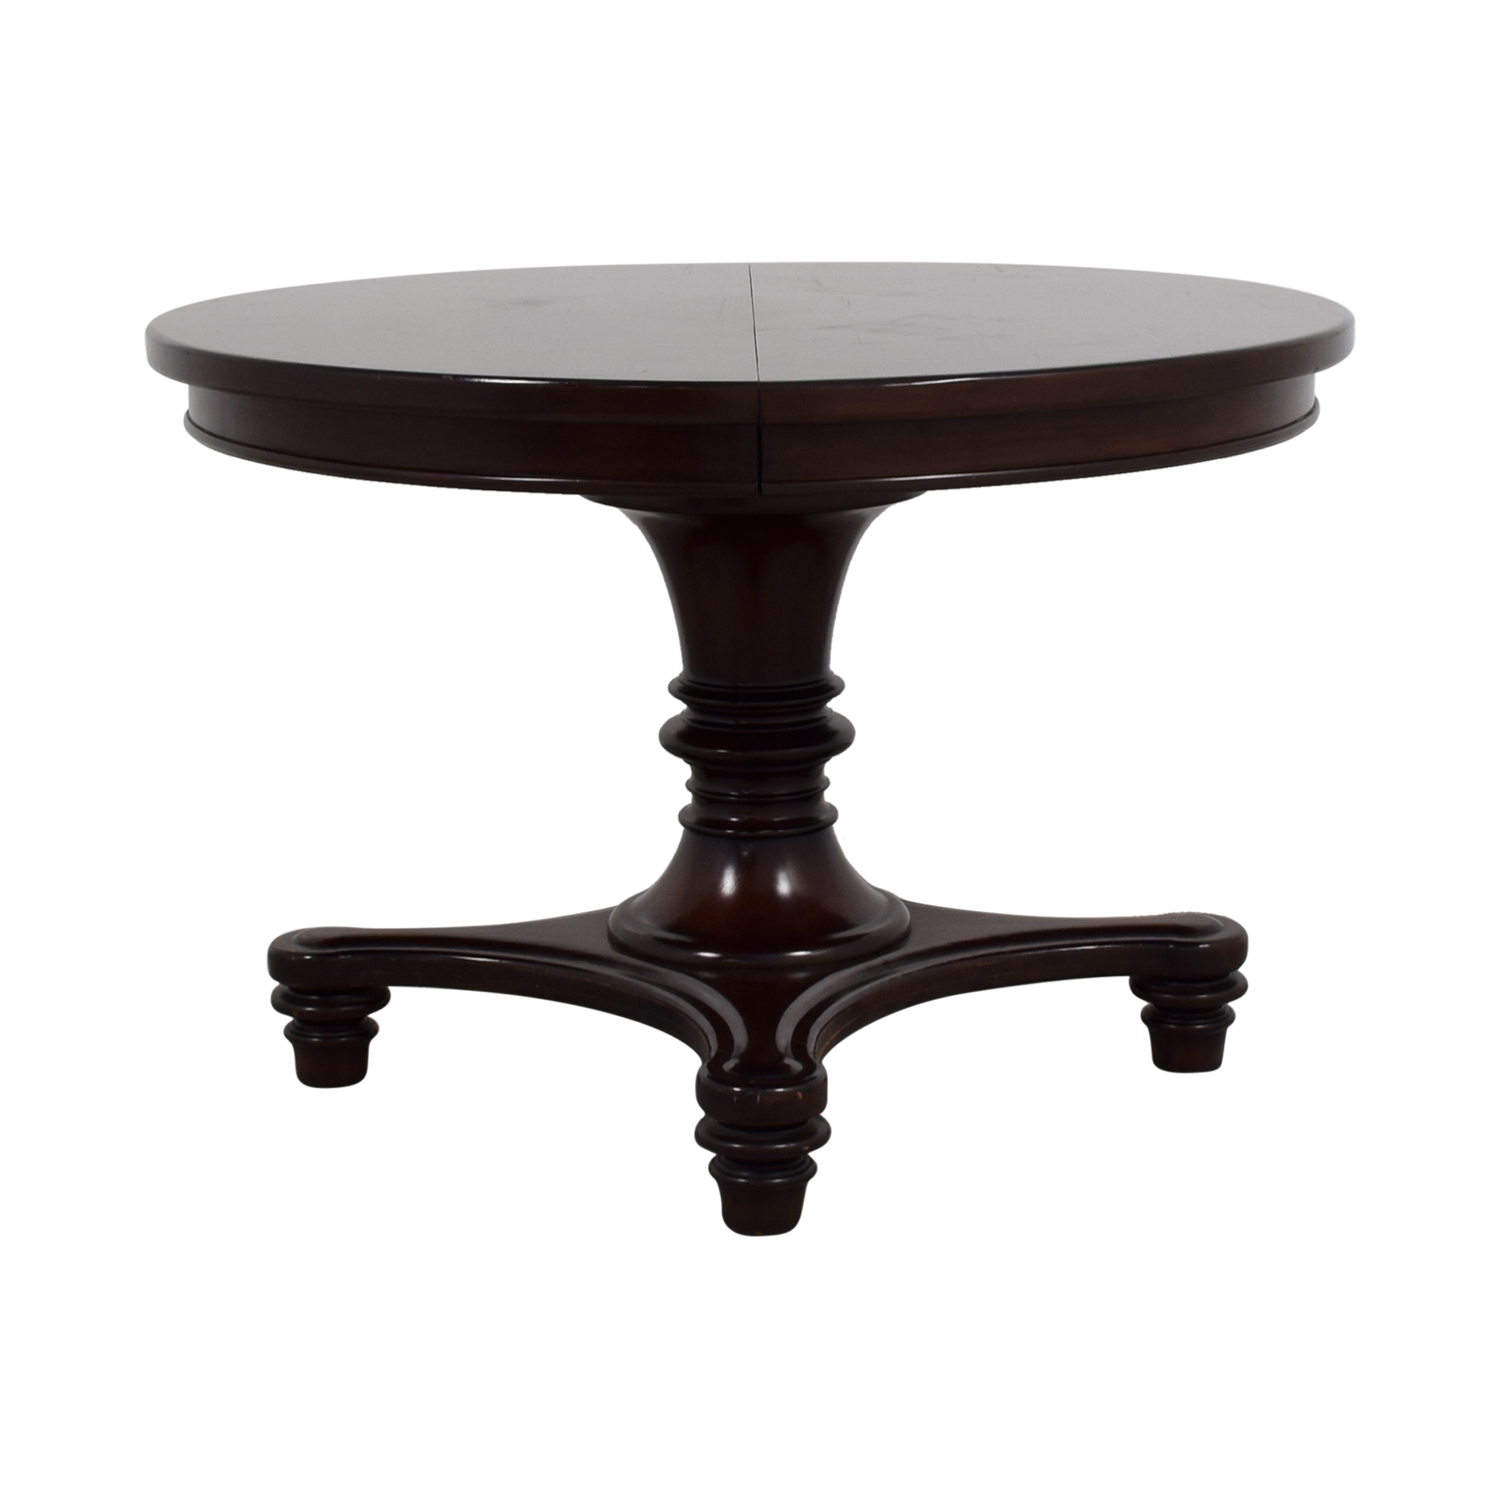 OFF Pottery Barn Pottery Barn Sumner Round Cherry Wood Table - Pottery barn sumner dining table